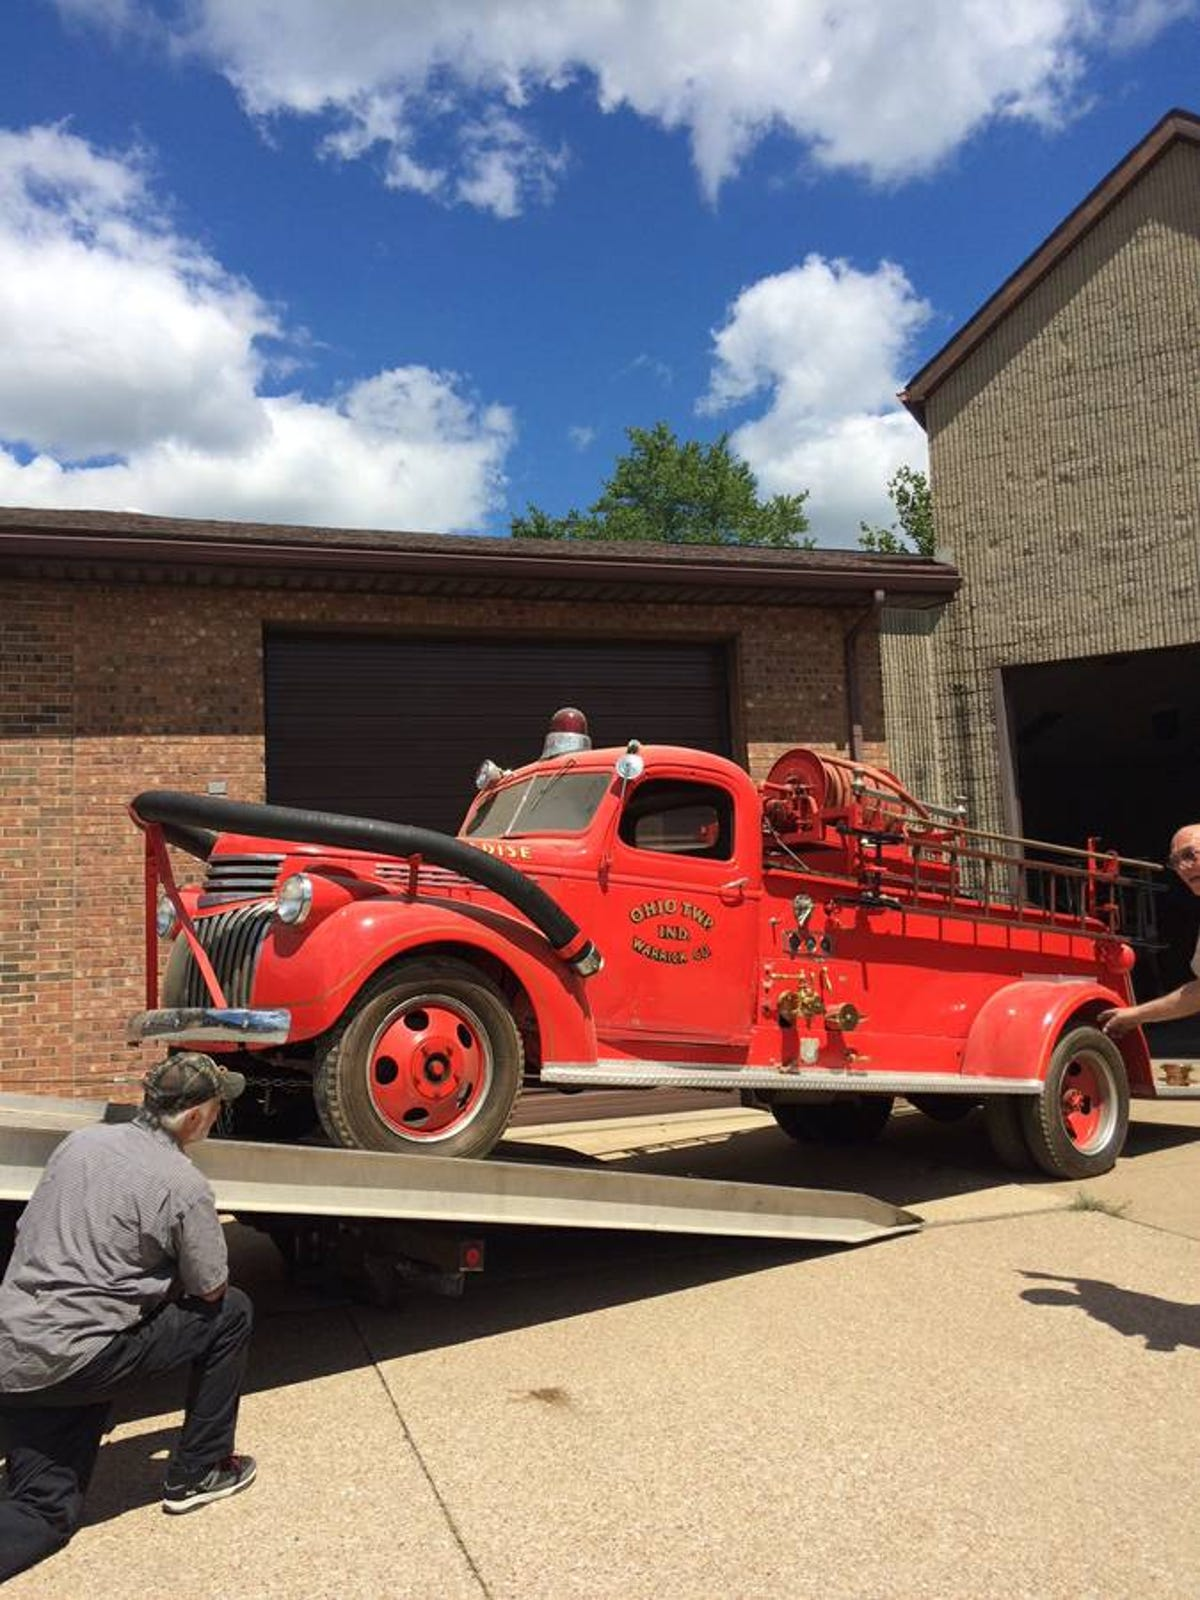 Wanna buy a 72-year-old firetruck with low mileage?